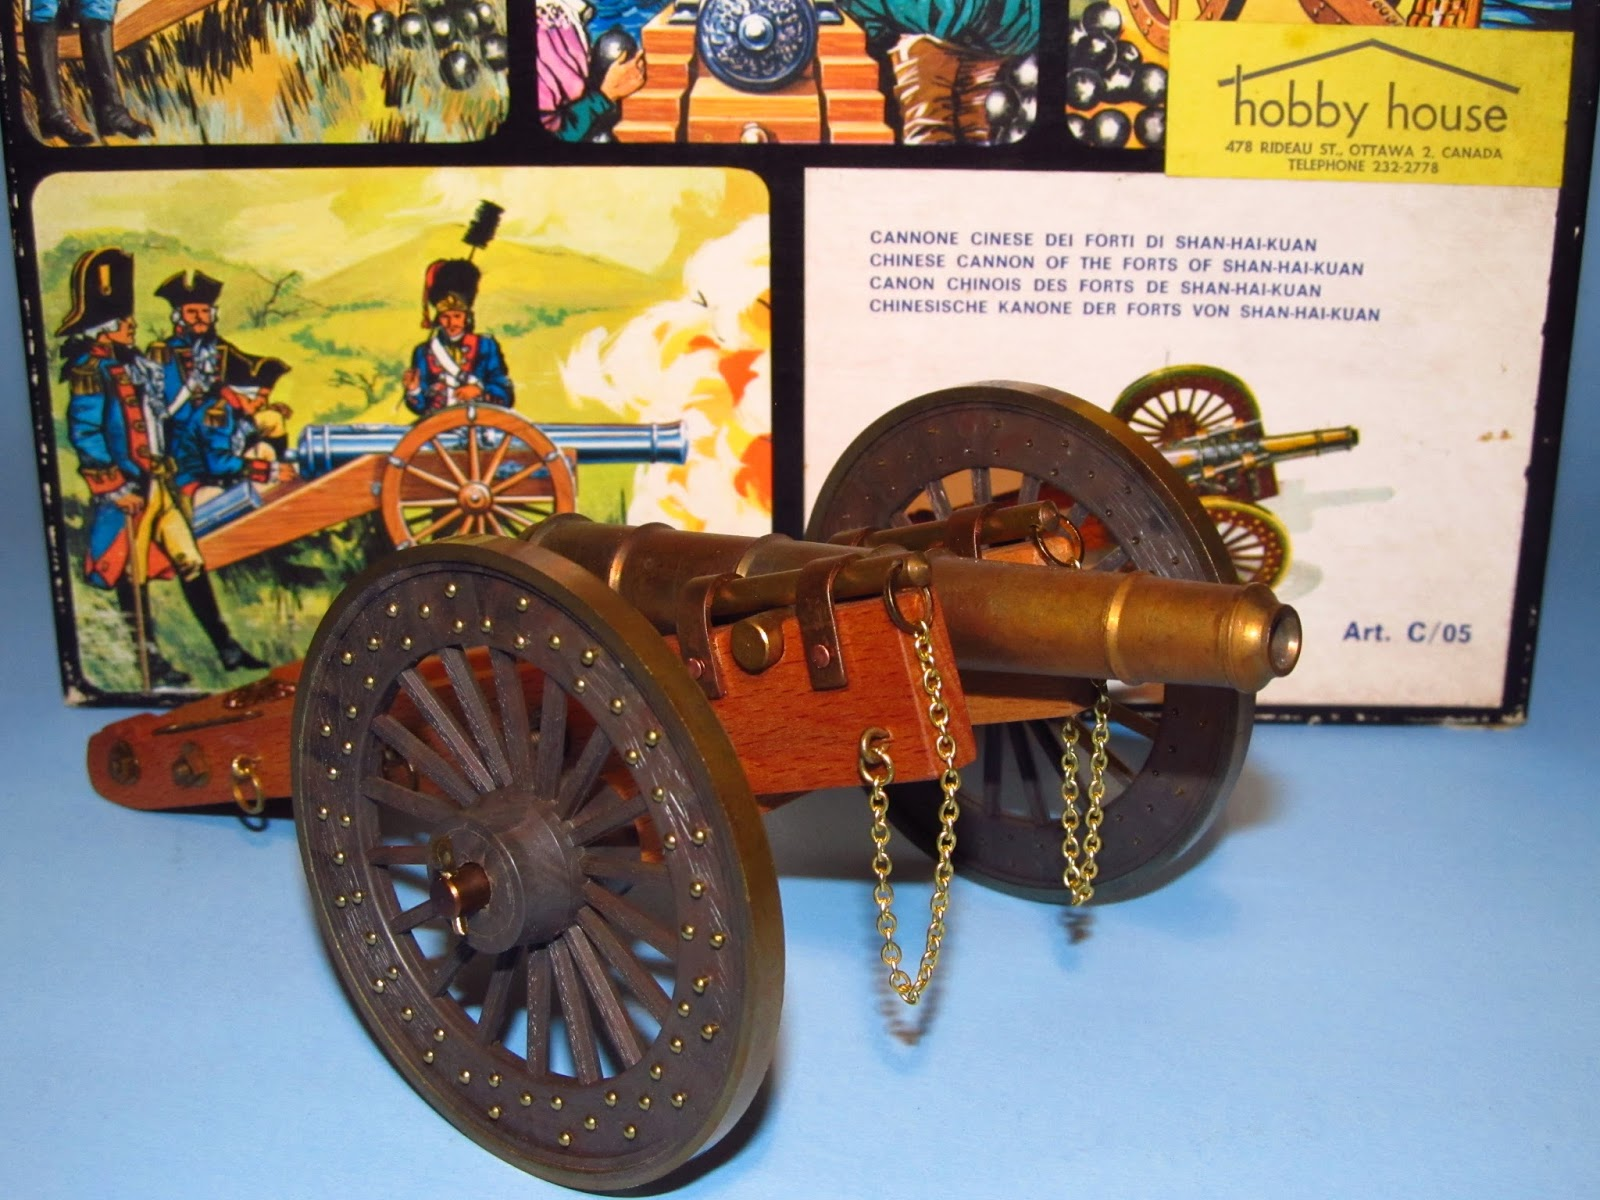 Clearwater Models: CHINA 1867 FORT SHAN-KAI-KUAN CANNON (Pocher Torino)